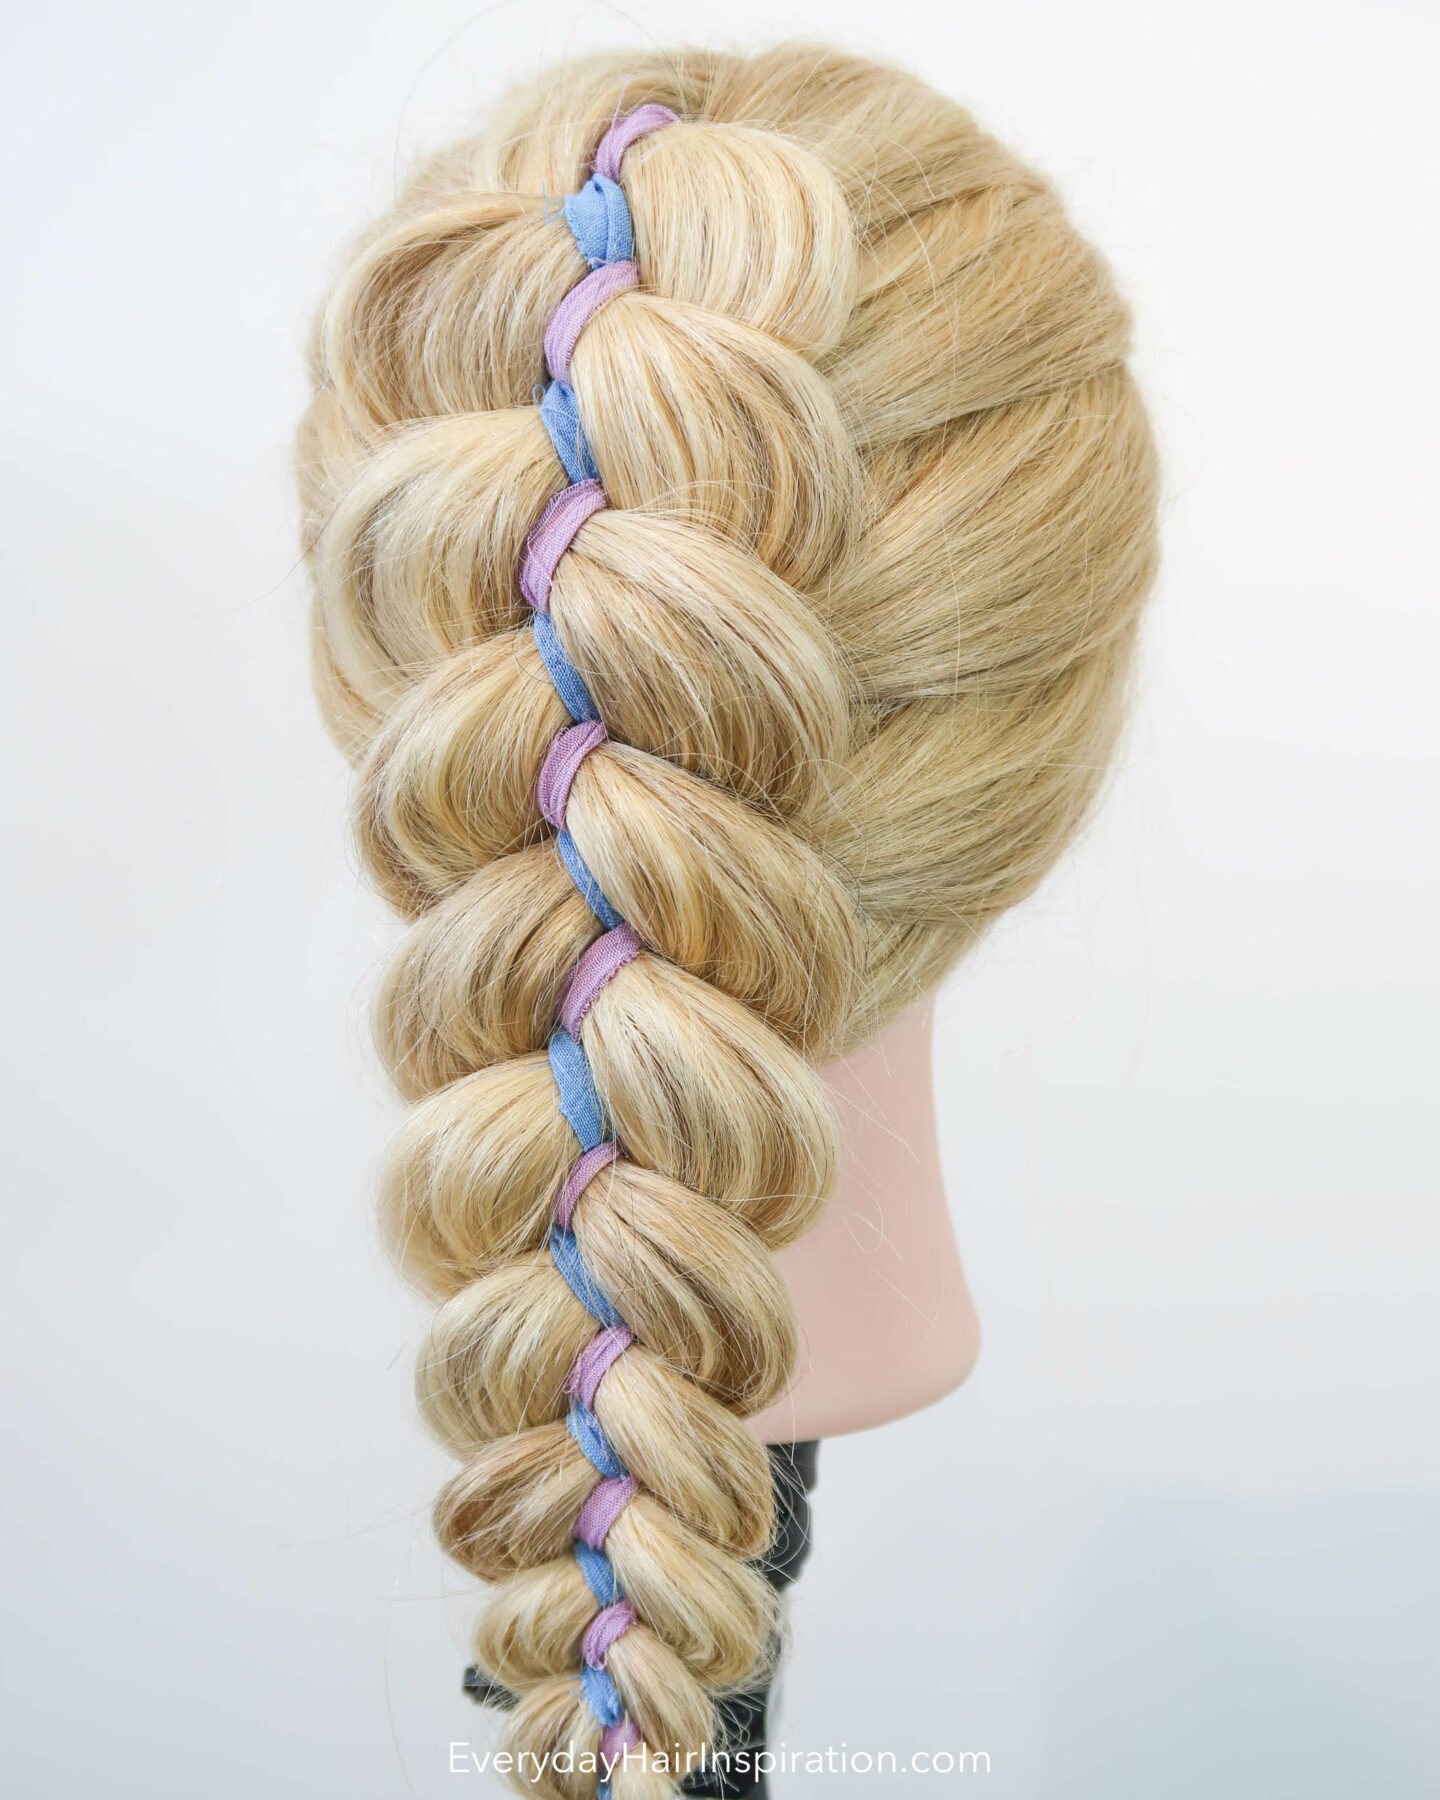 Blonde hairdresser doll, seen from the back, at an angle, with a dutch ribbon braid in the hair. The ribbon is blue and purple and is zig zagging down the middle of the braid.